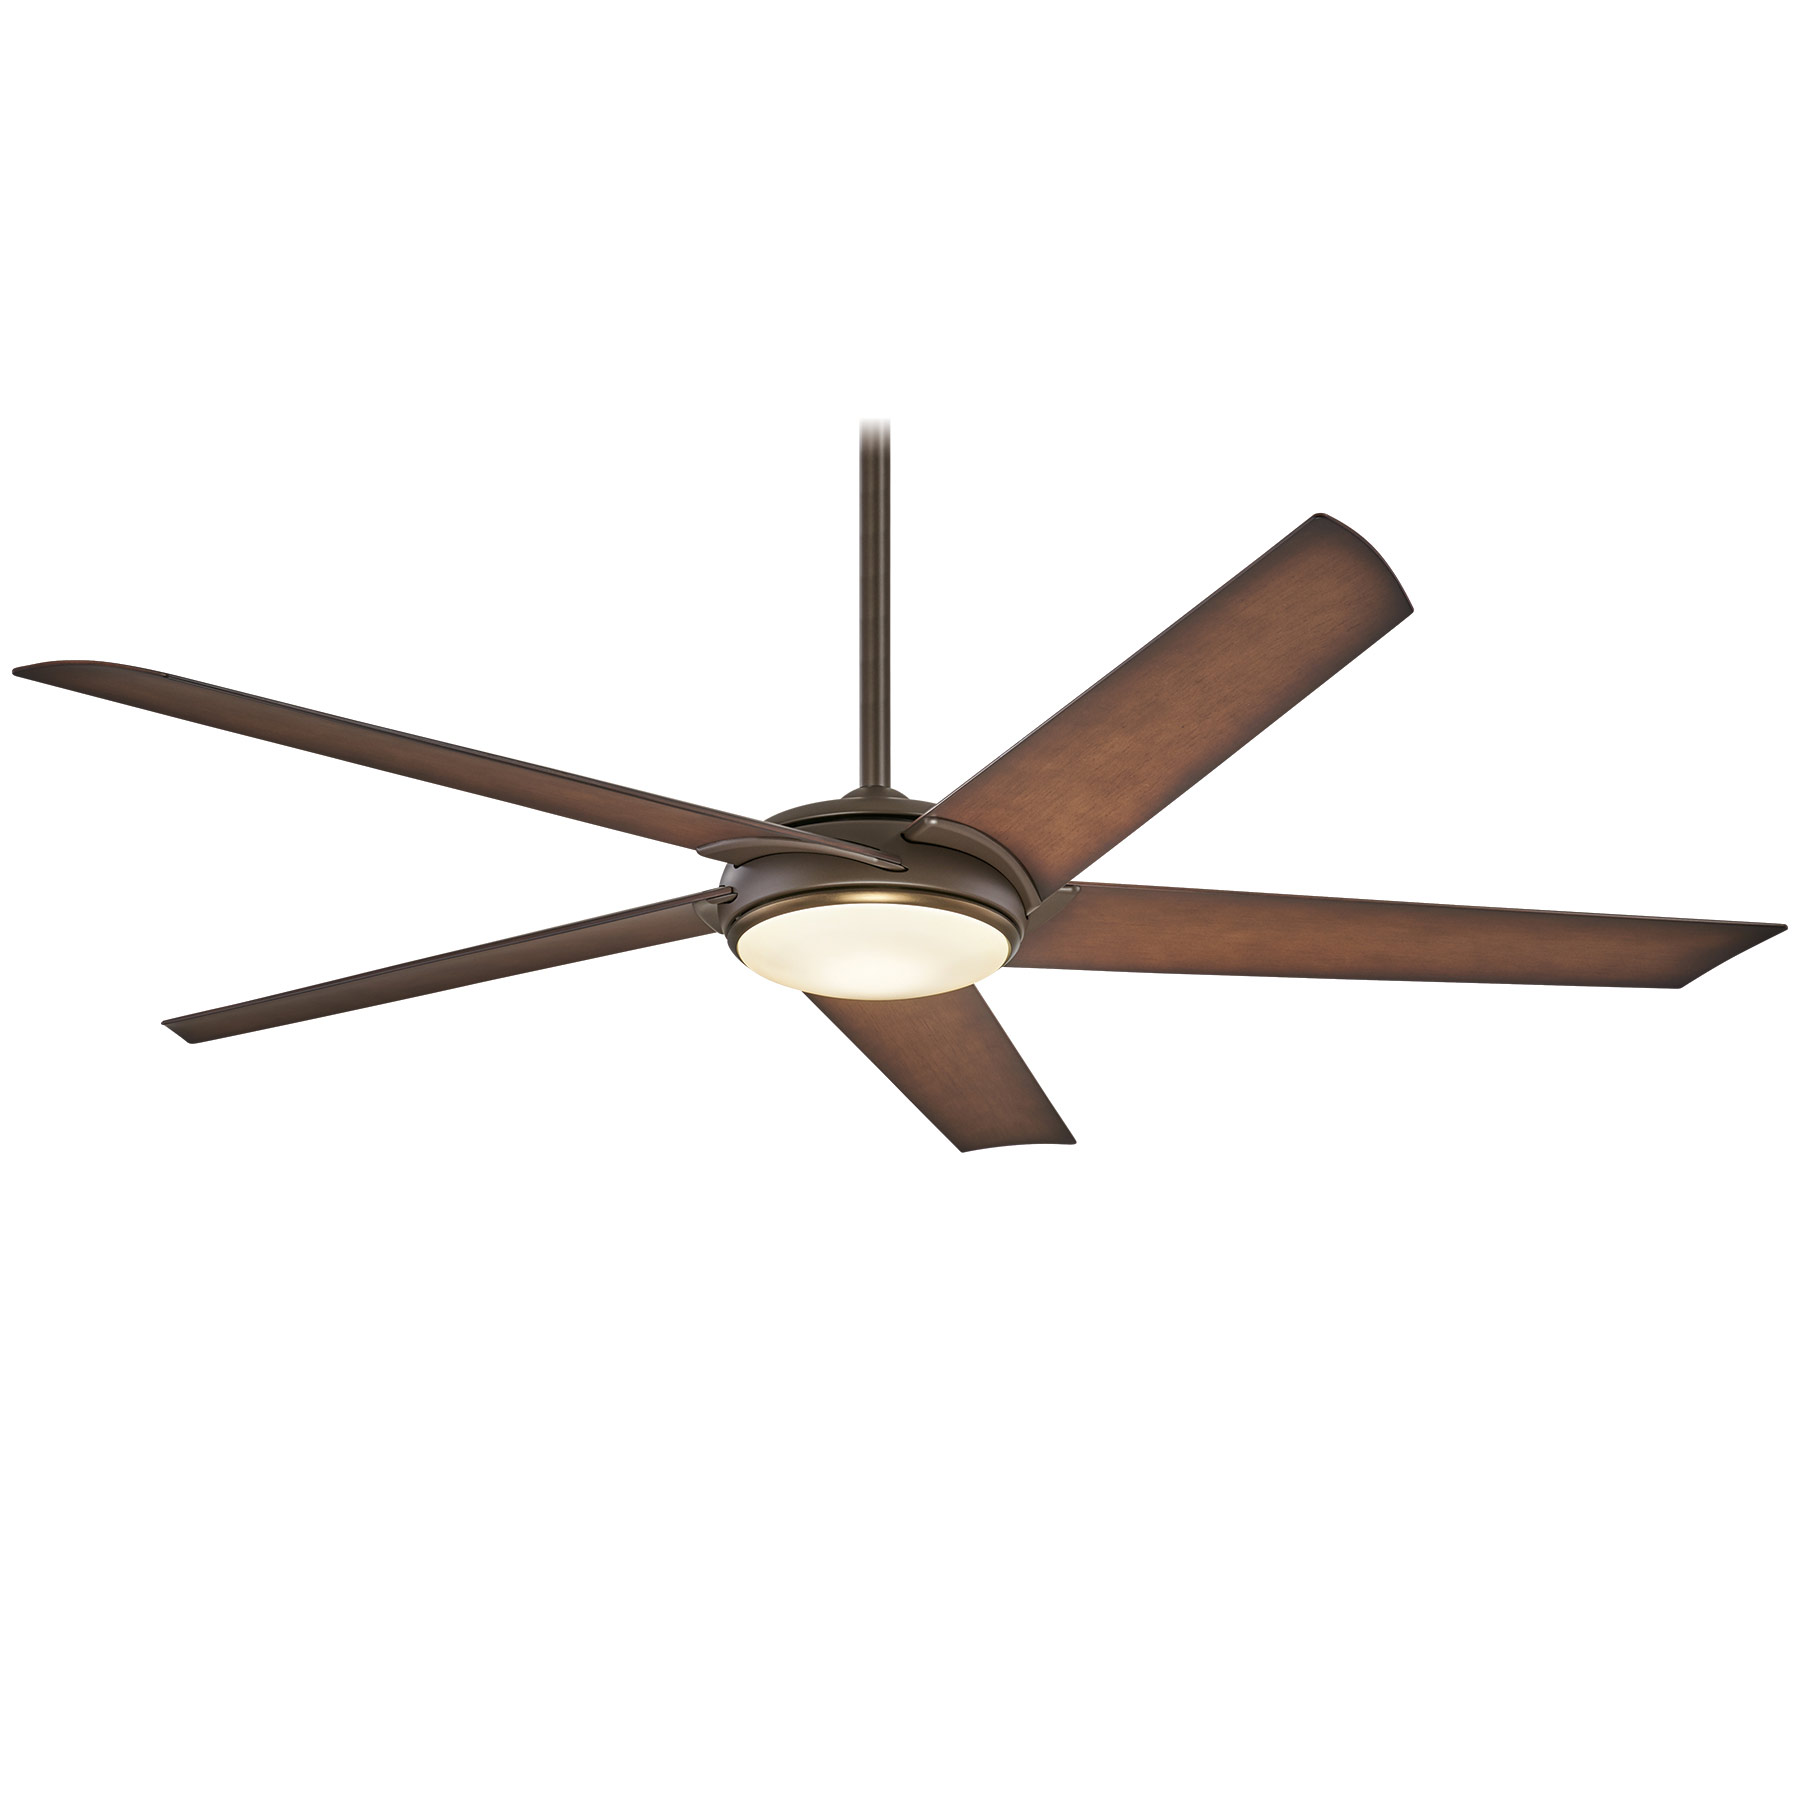 Ceiling Fan with Light by Minka Aire | F617L-ORB/AB:Raptor Ceiling Fan with Light by Minka Aire | F617L-ORB/AB,Lighting